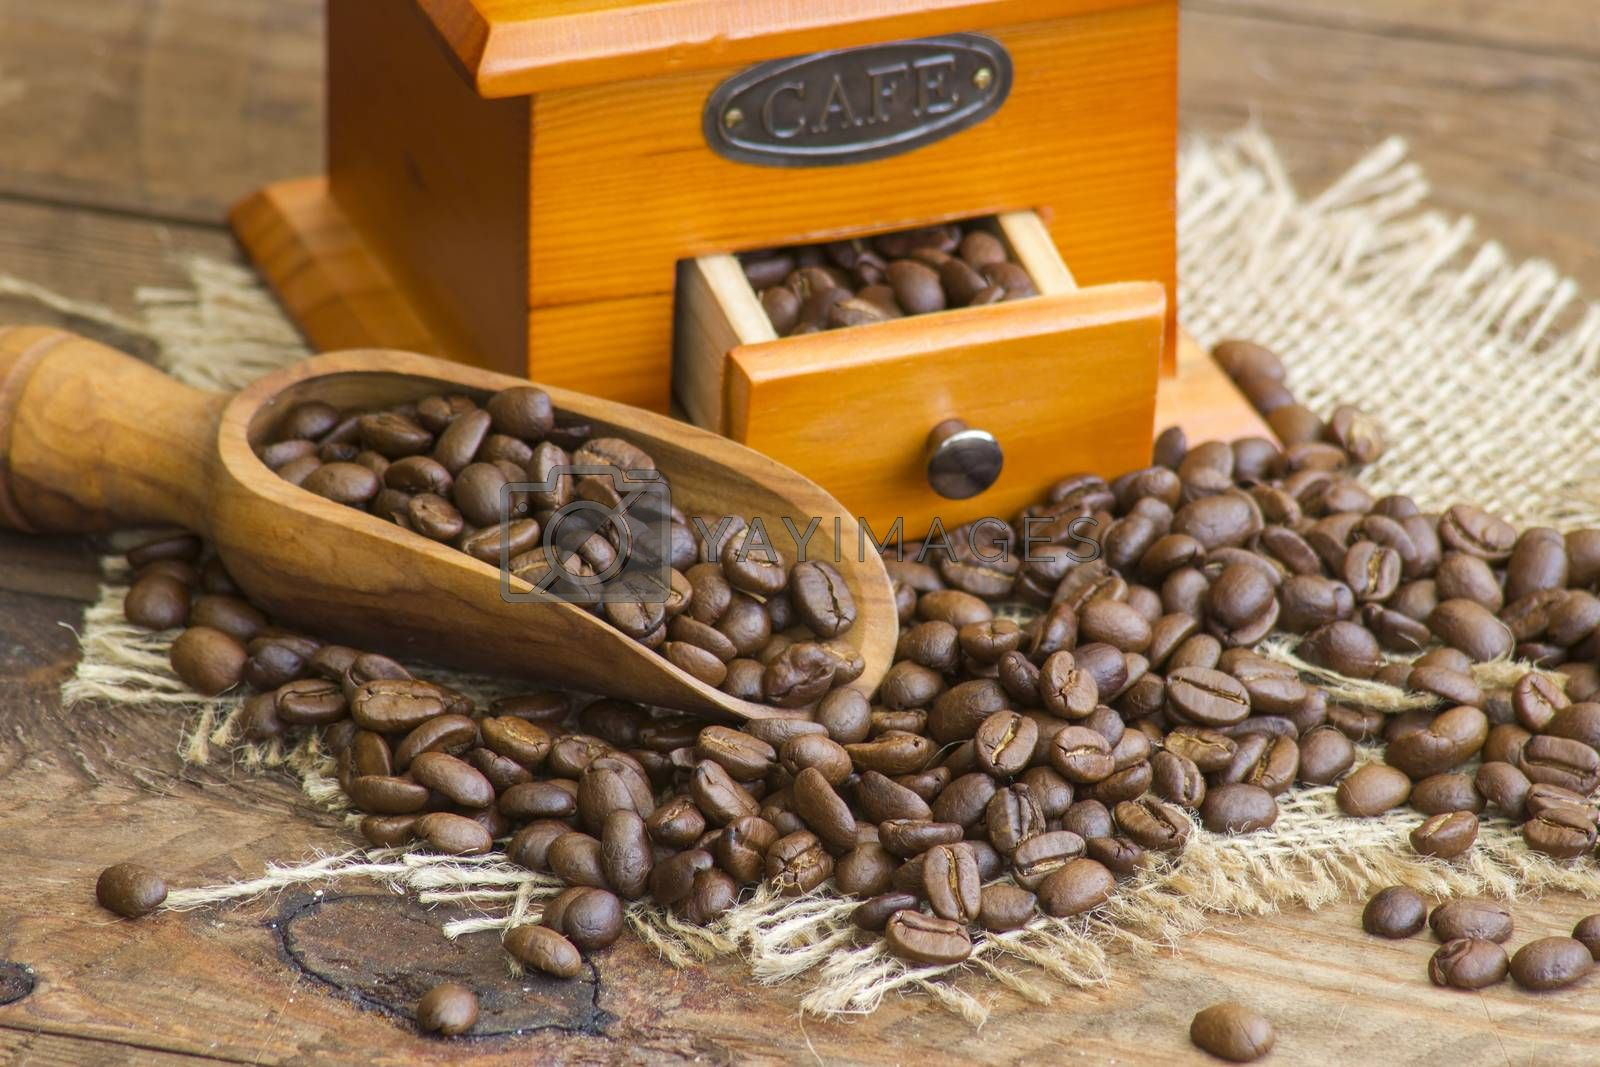 coffee grinder on wooden background with roasted coffee beans